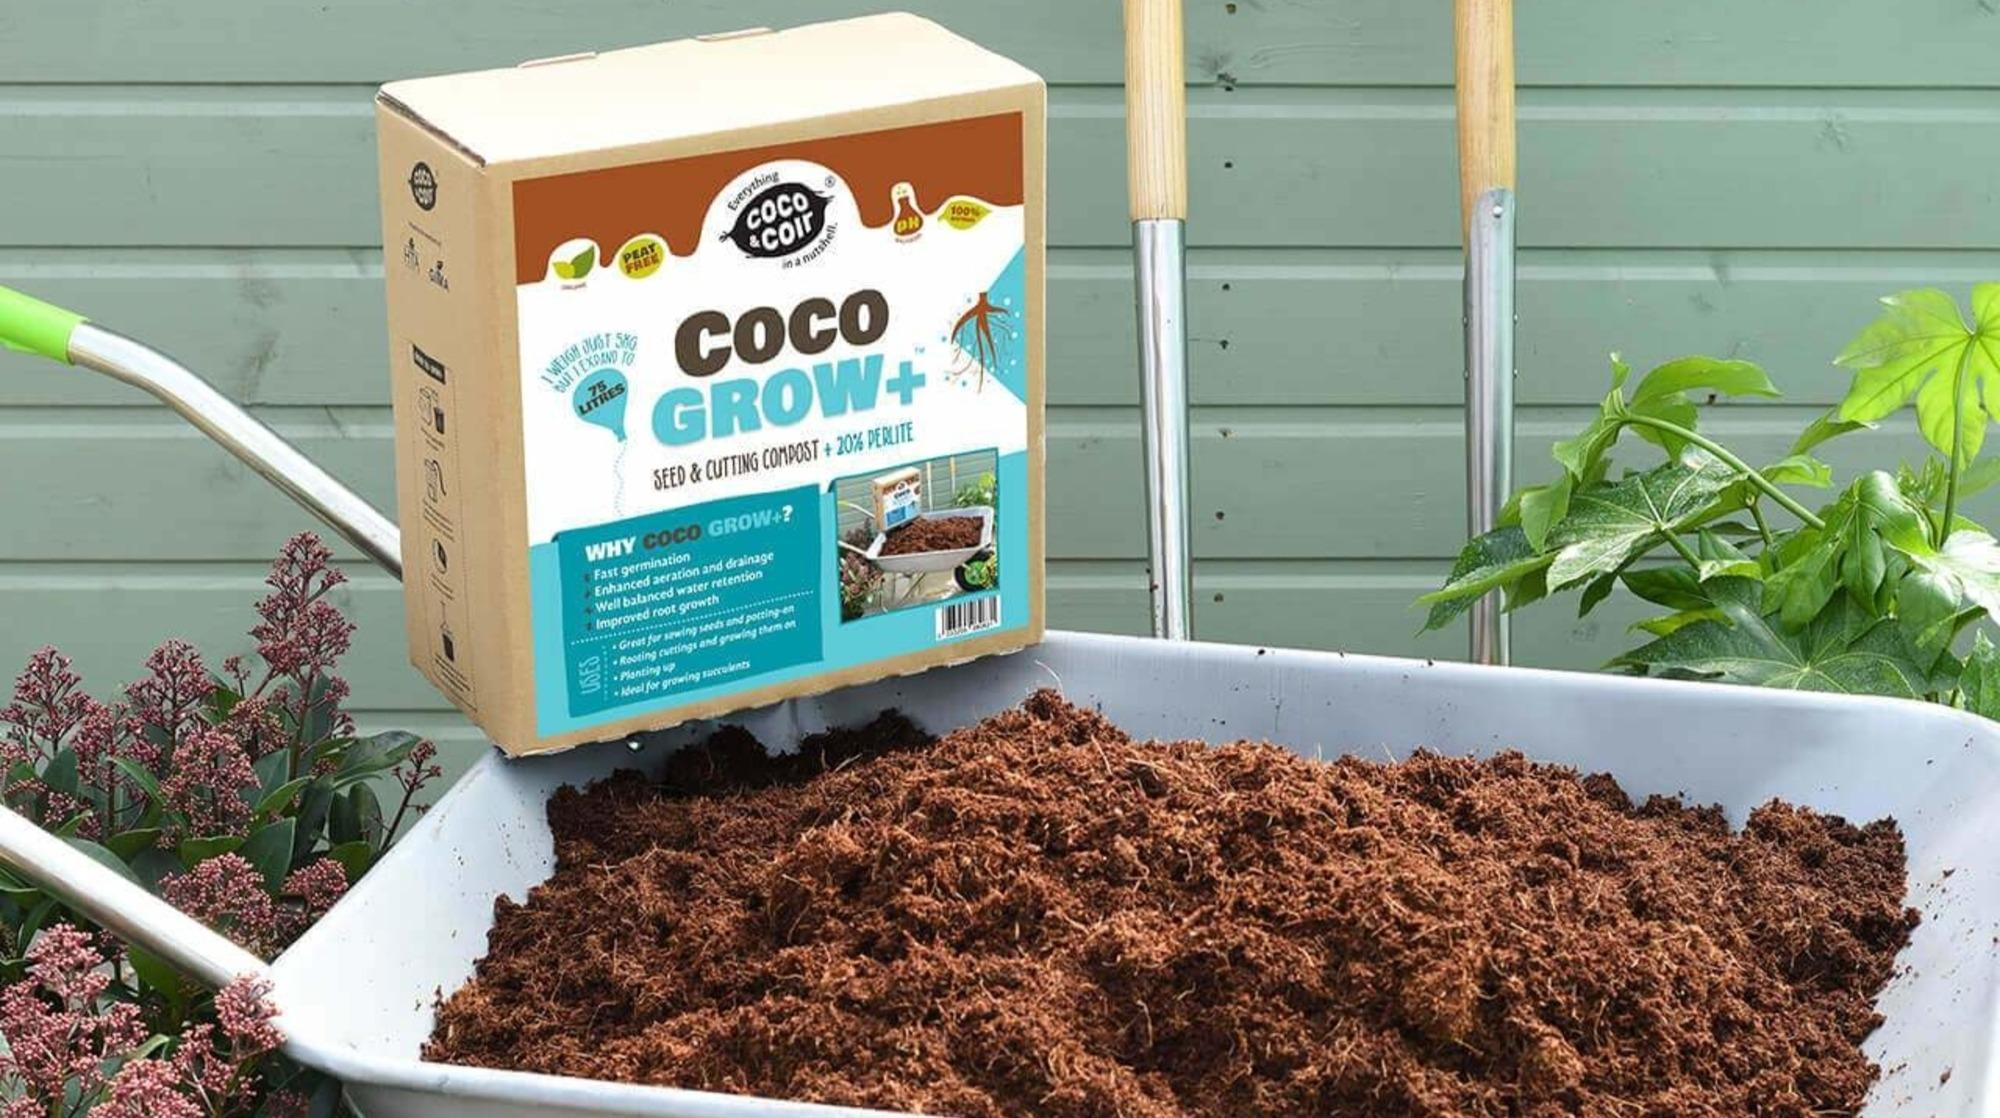 Coco & Coir sells all-natural compost to improve your garden bed